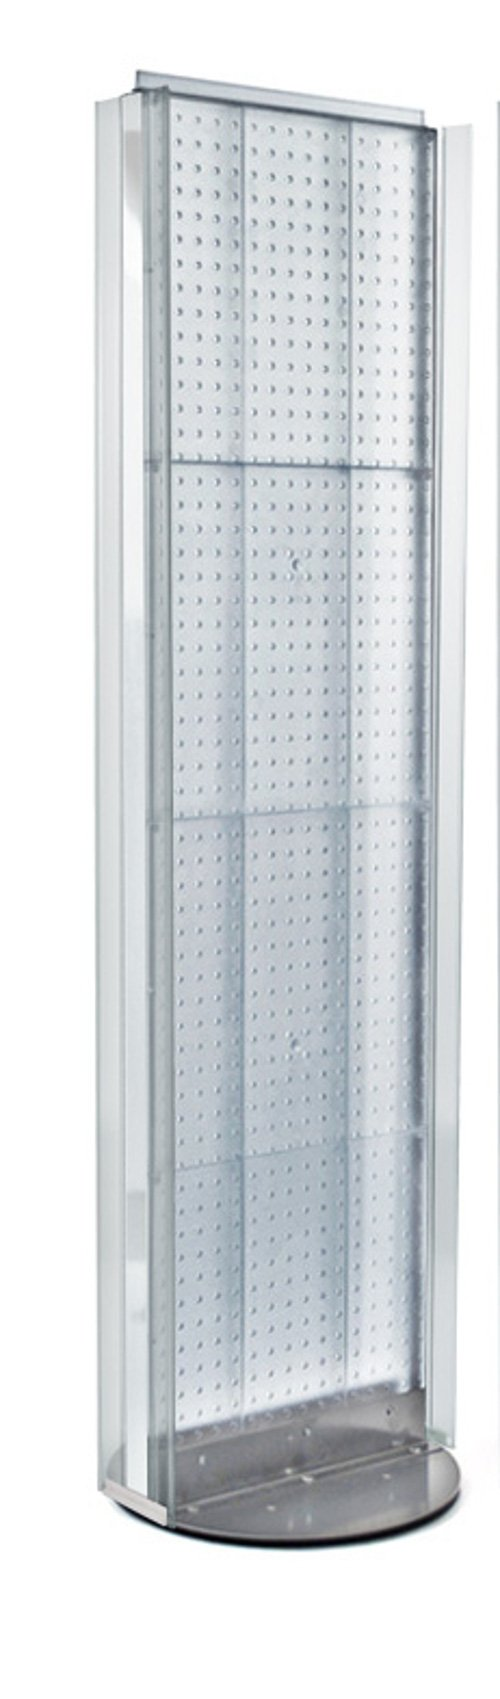 New Clear 2 Sided Pegboard Floor Display Stand with Revolving Base 16''w x 60'' h